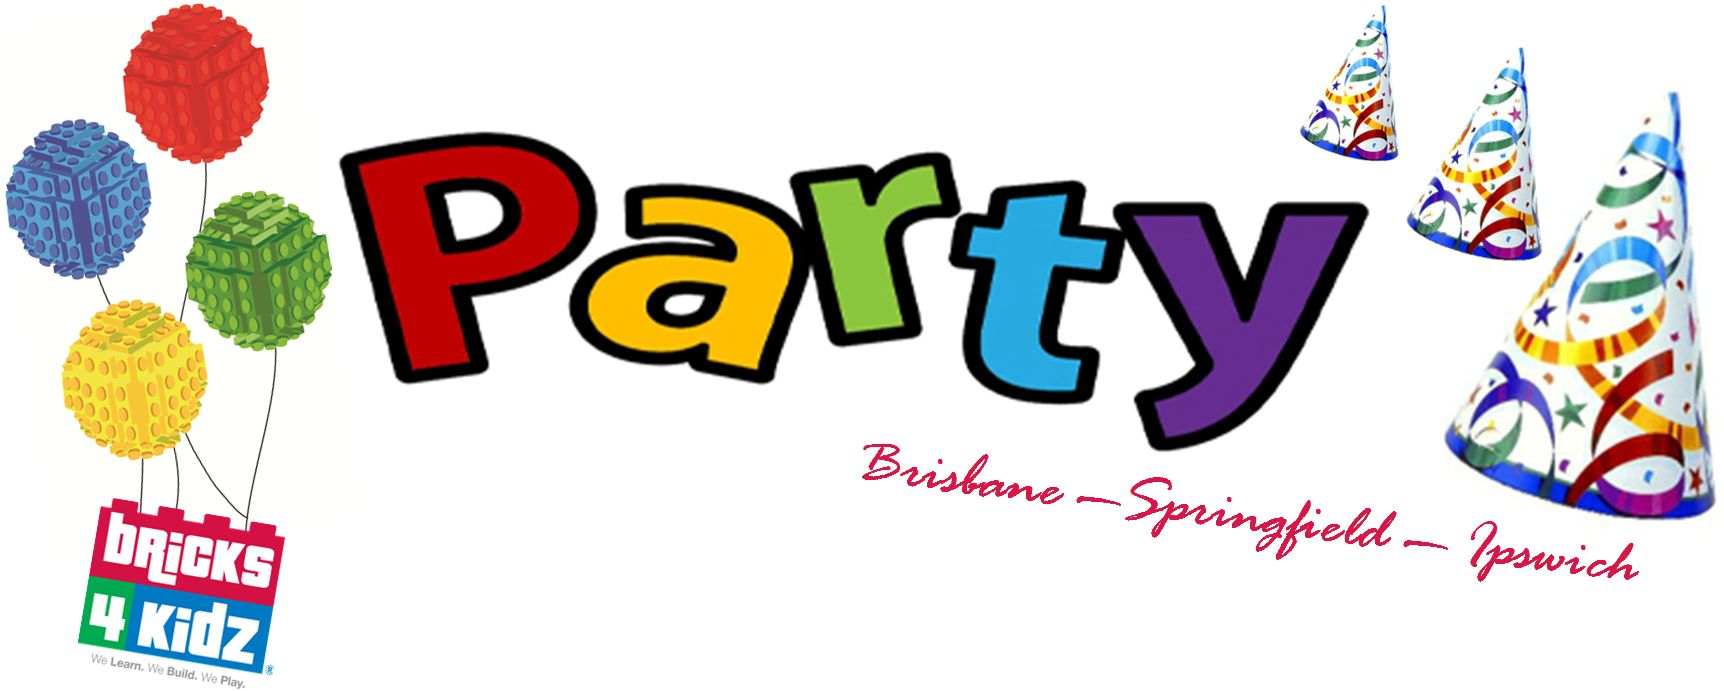 Kids Birthday Party Bricks 4 Kidz Centre Springfield Or